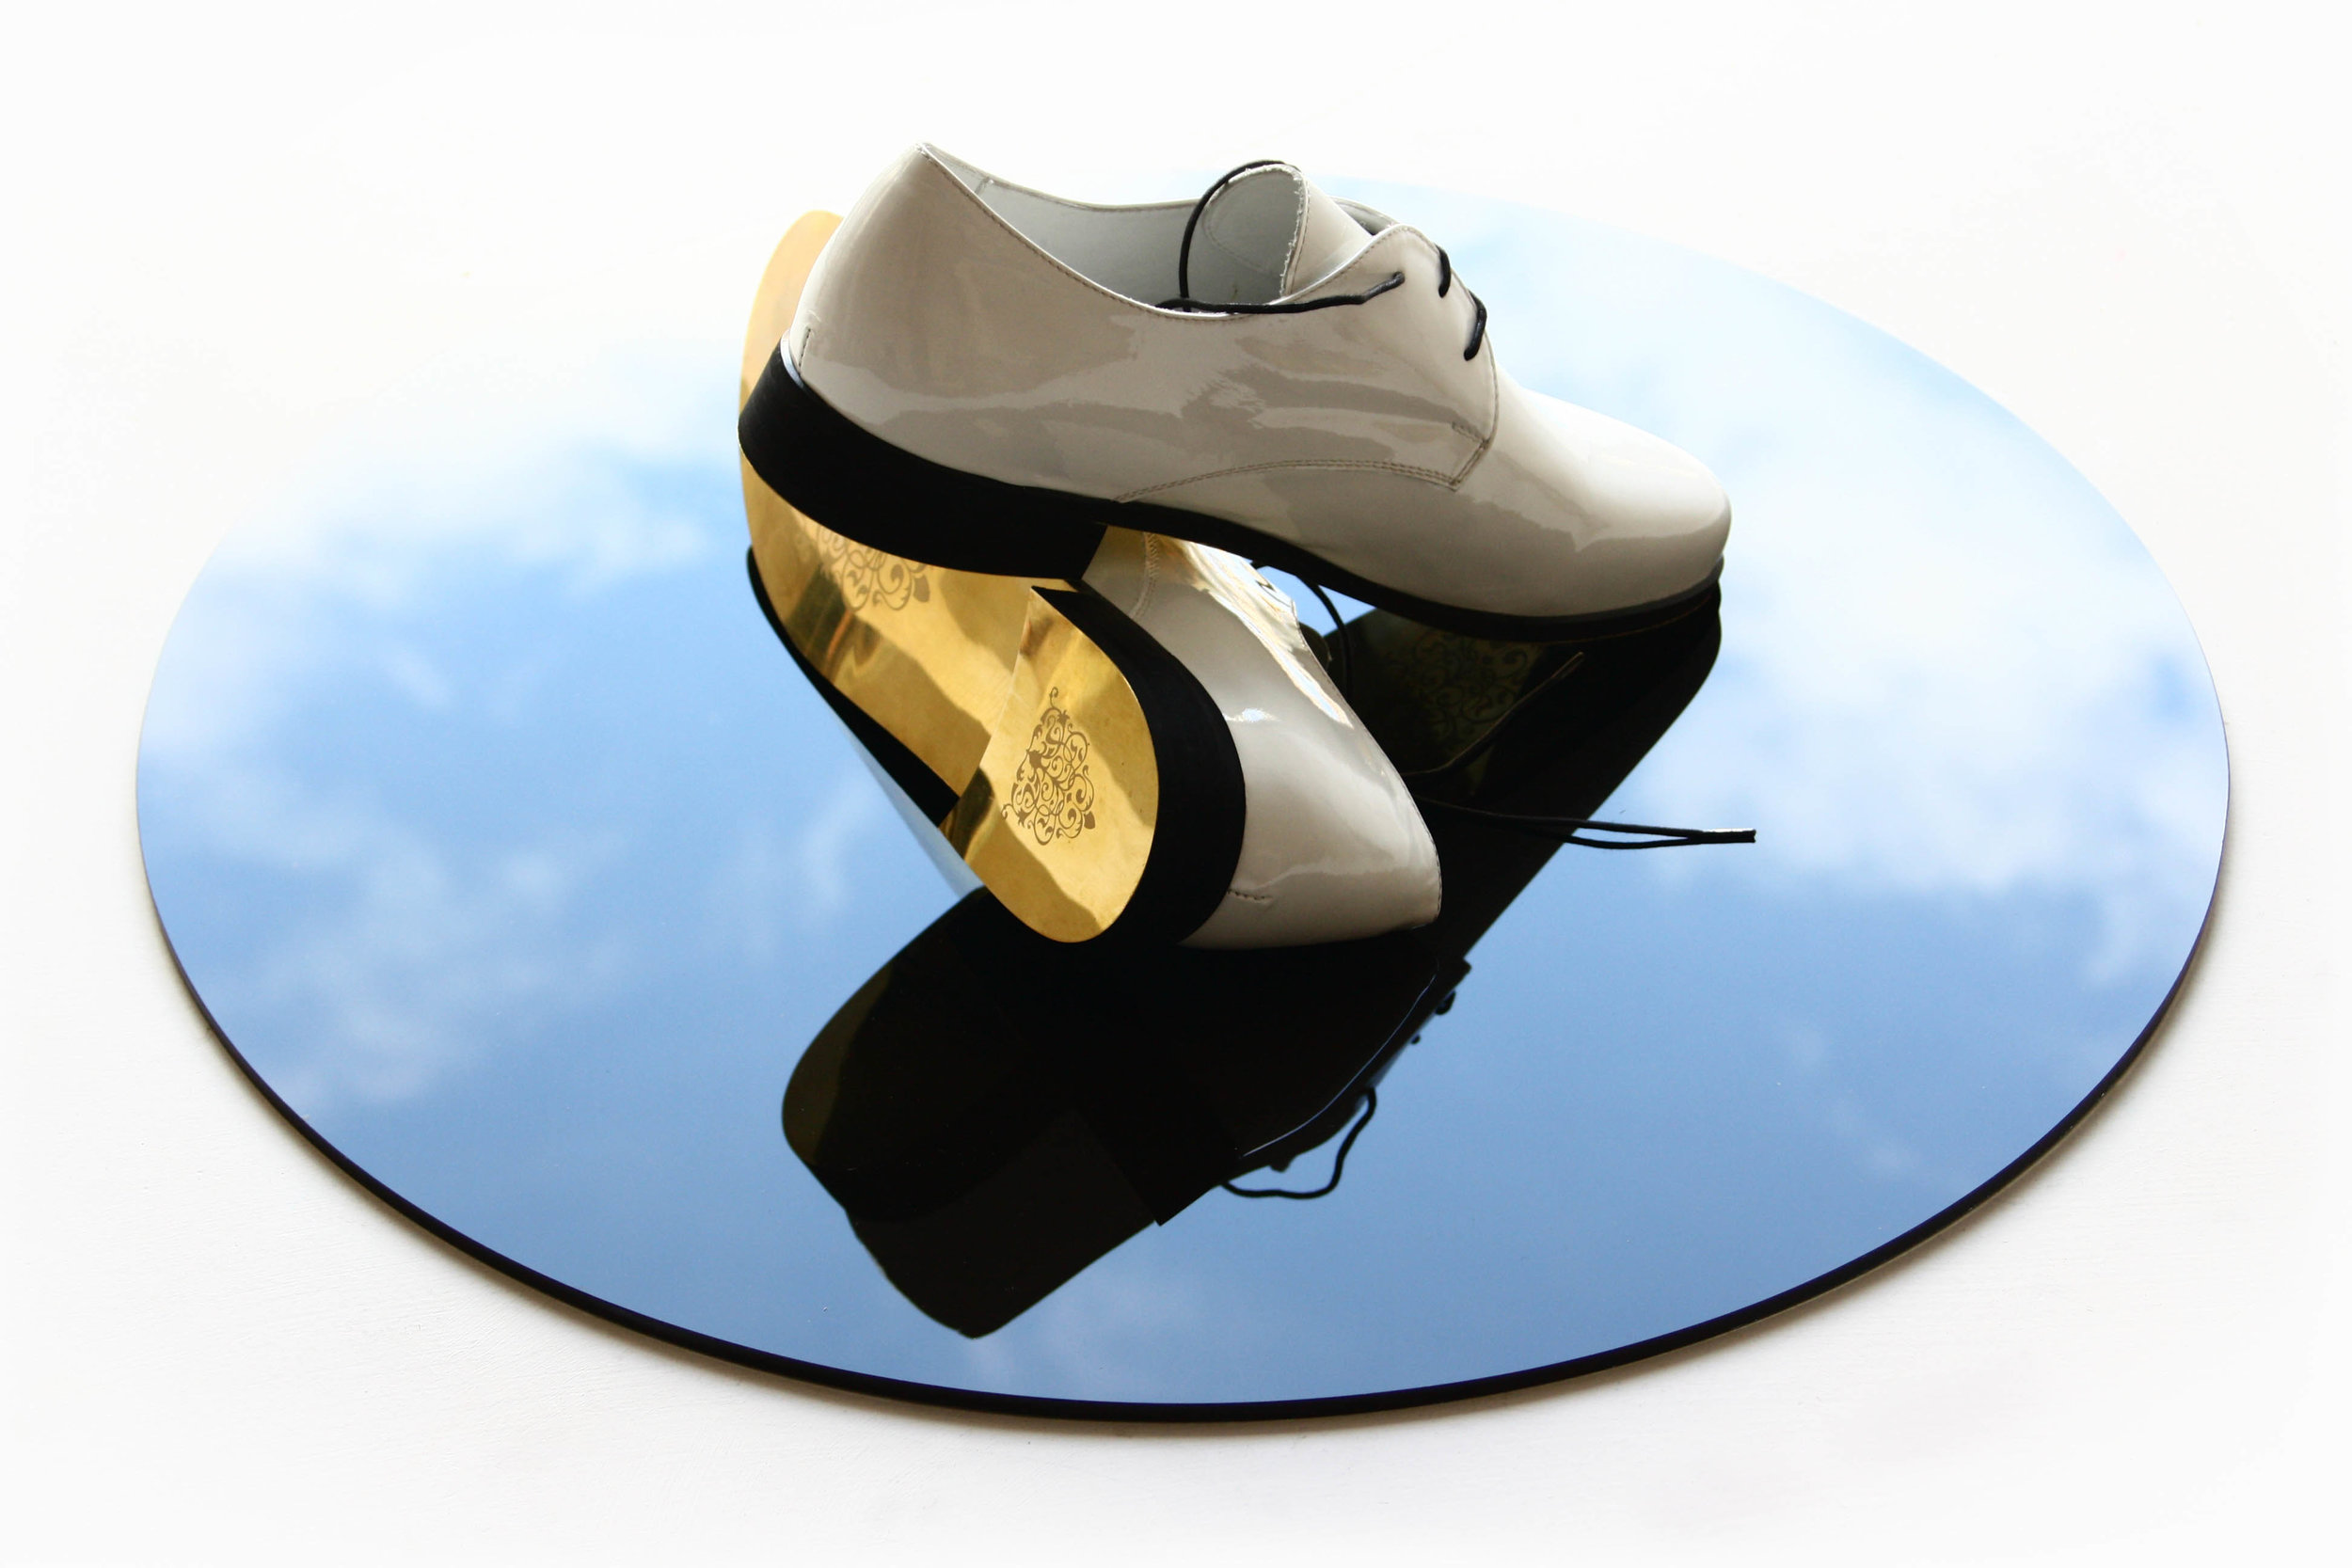 GOLDEN SHOES FOR GOLDEN ROUTES (2010) engraved bronze, leather, lacquer, black glass, 20 x 55 x 55 cm